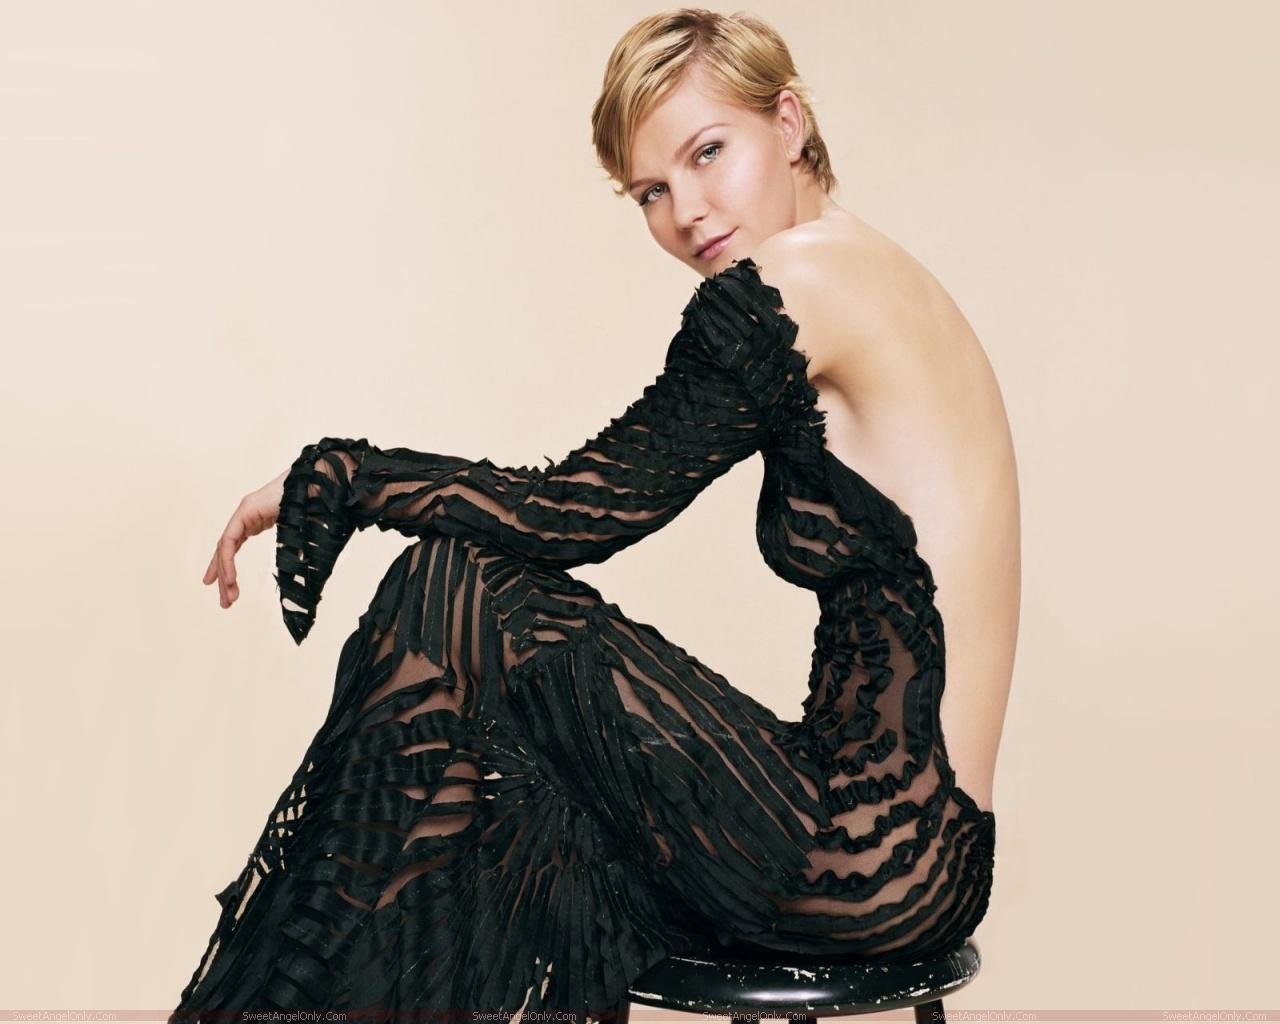 http://4.bp.blogspot.com/-ga6Ty-fzllE/TYjCQqkbZHI/AAAAAAAAFEs/RMELP3MP2uc/s1600/kirsten_dunst_hot_photo_wallpaper_06.jpg